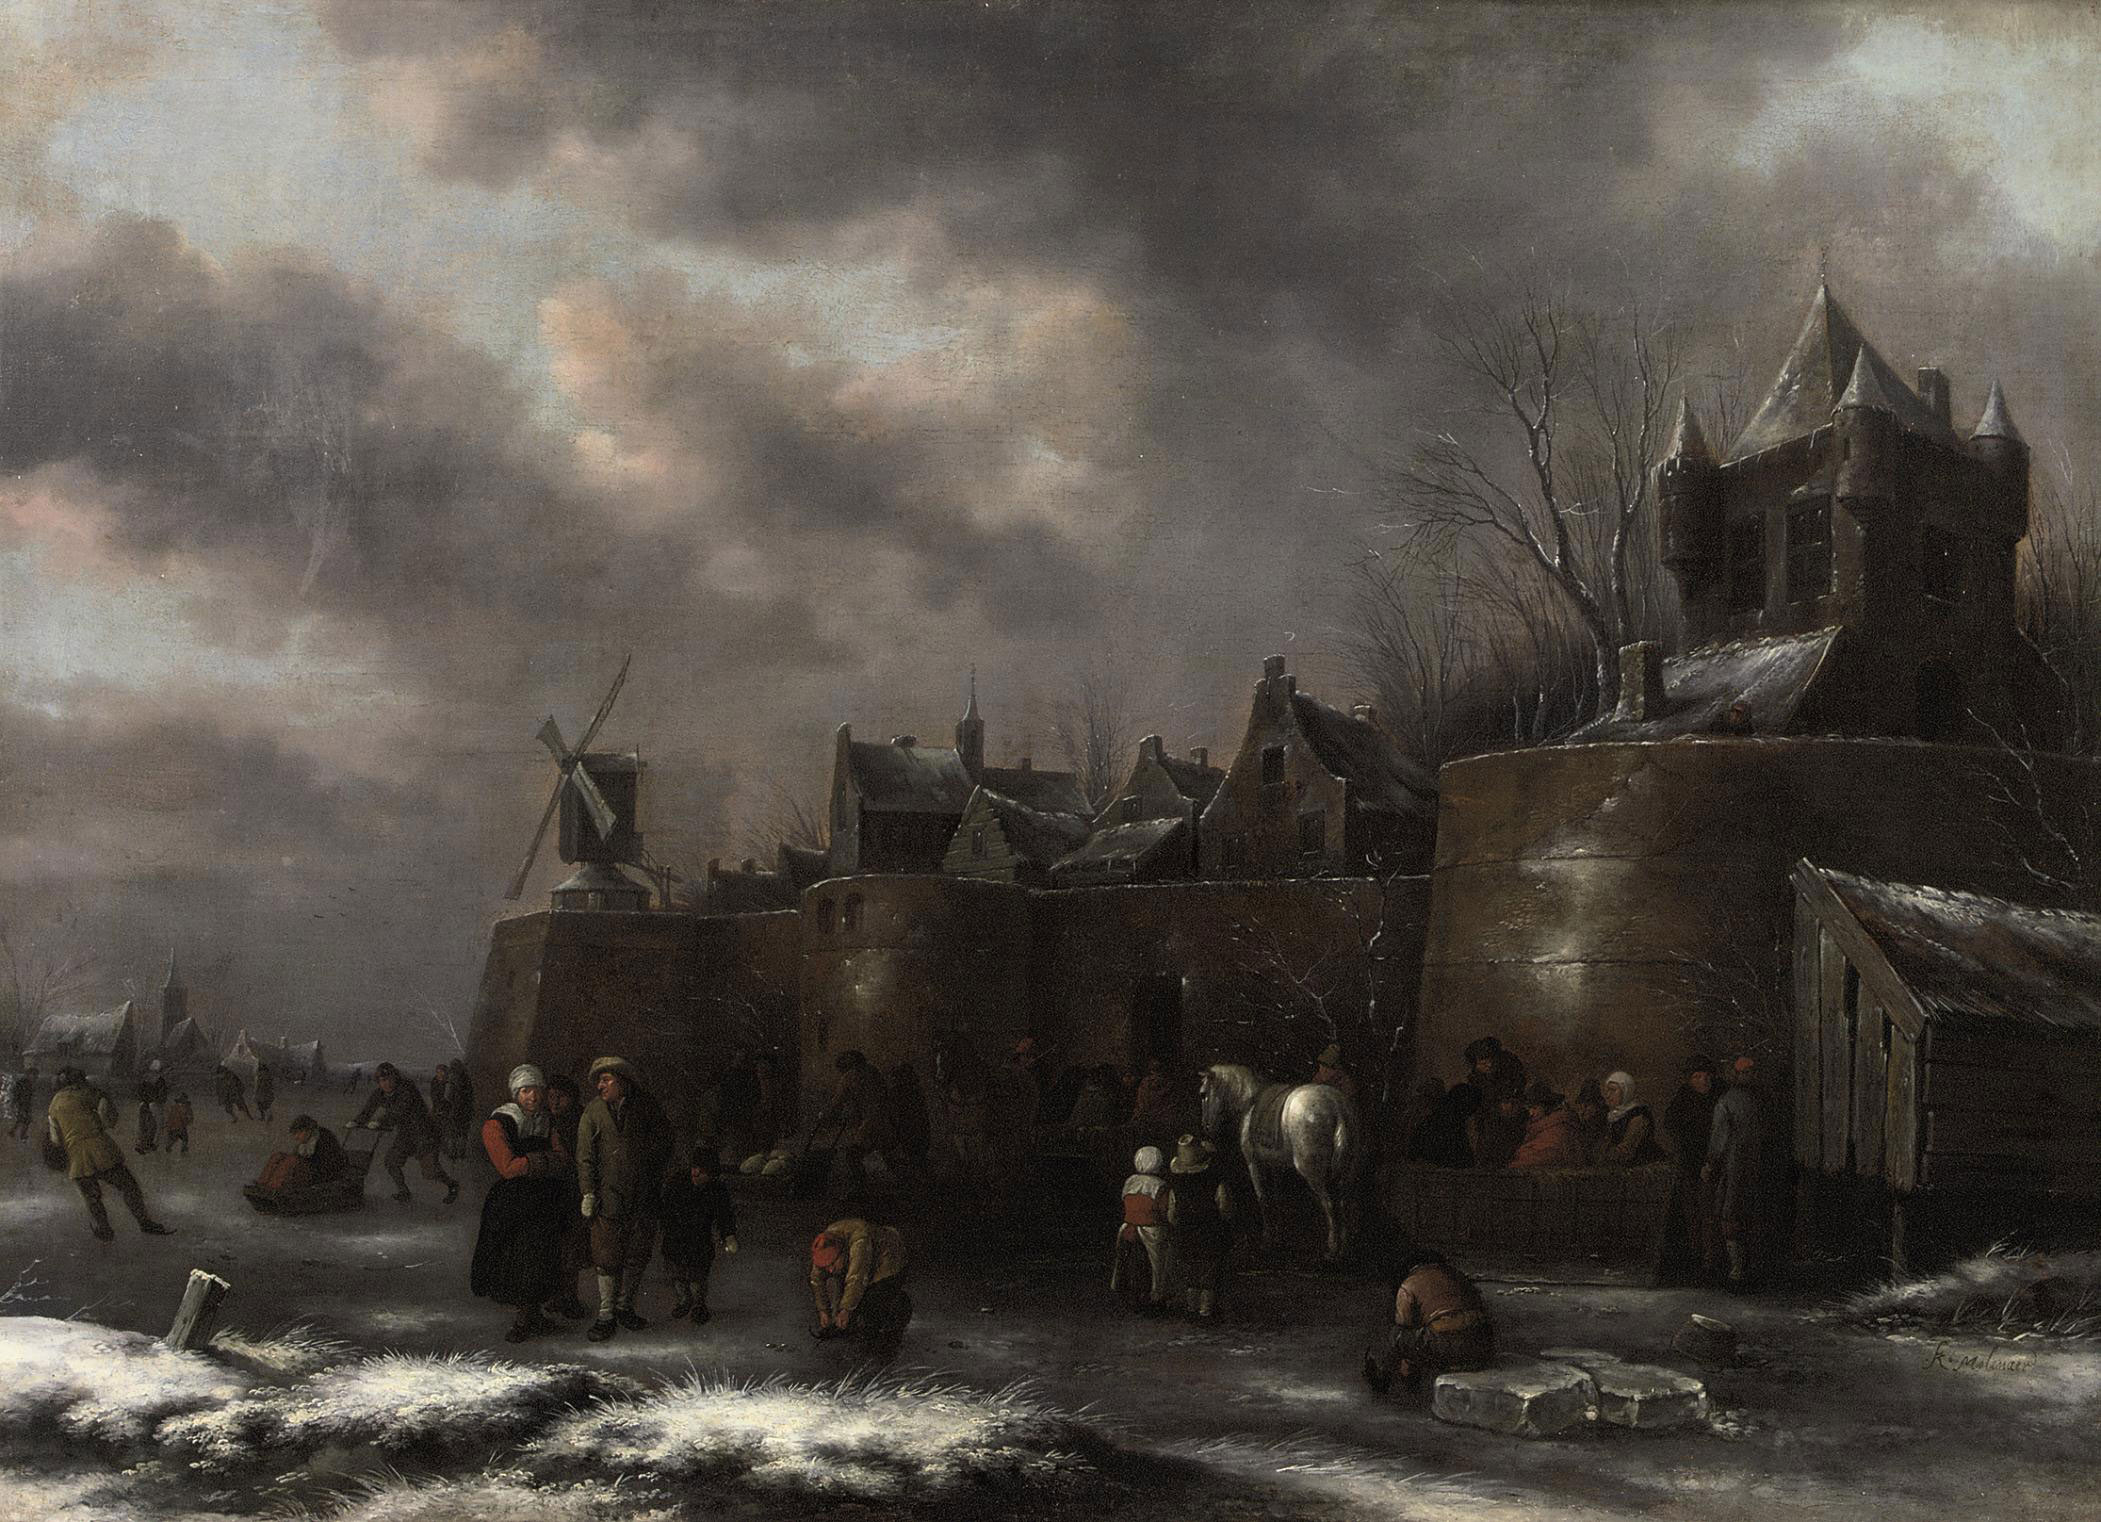 A winter landscape with figures skating and sleighing on a frozen moat outside a fortified town